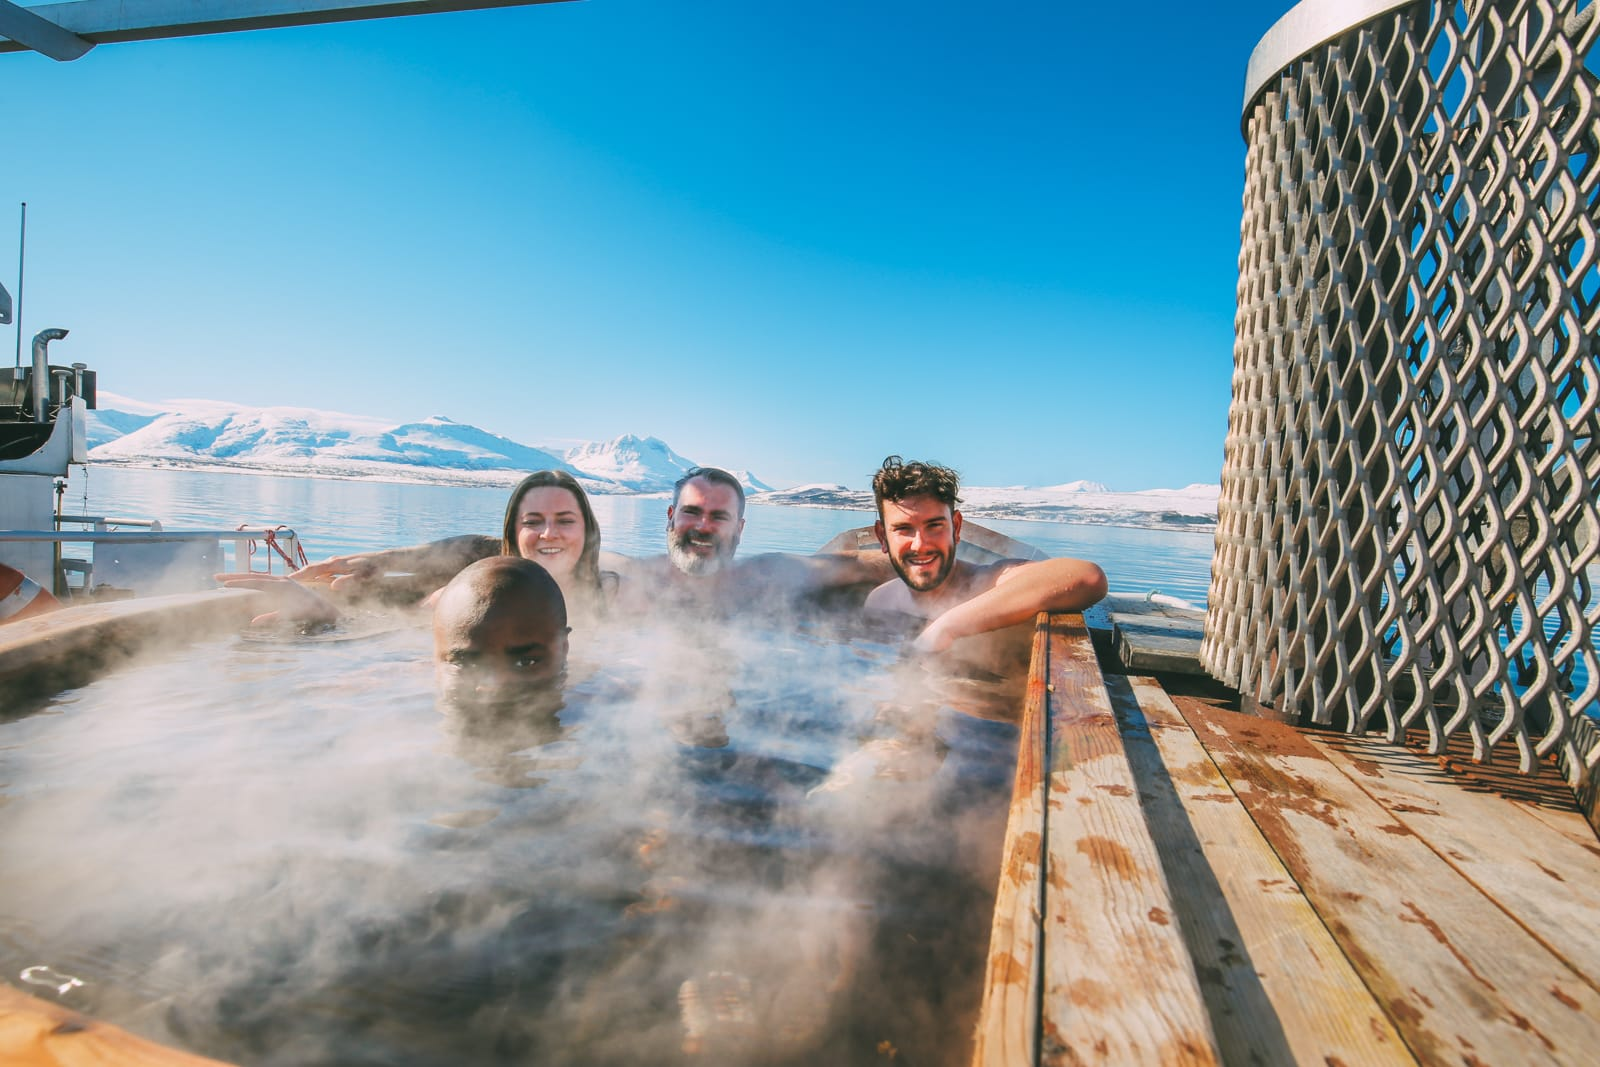 What's It Like To Swim In The Freezing Artic Sea? (32)